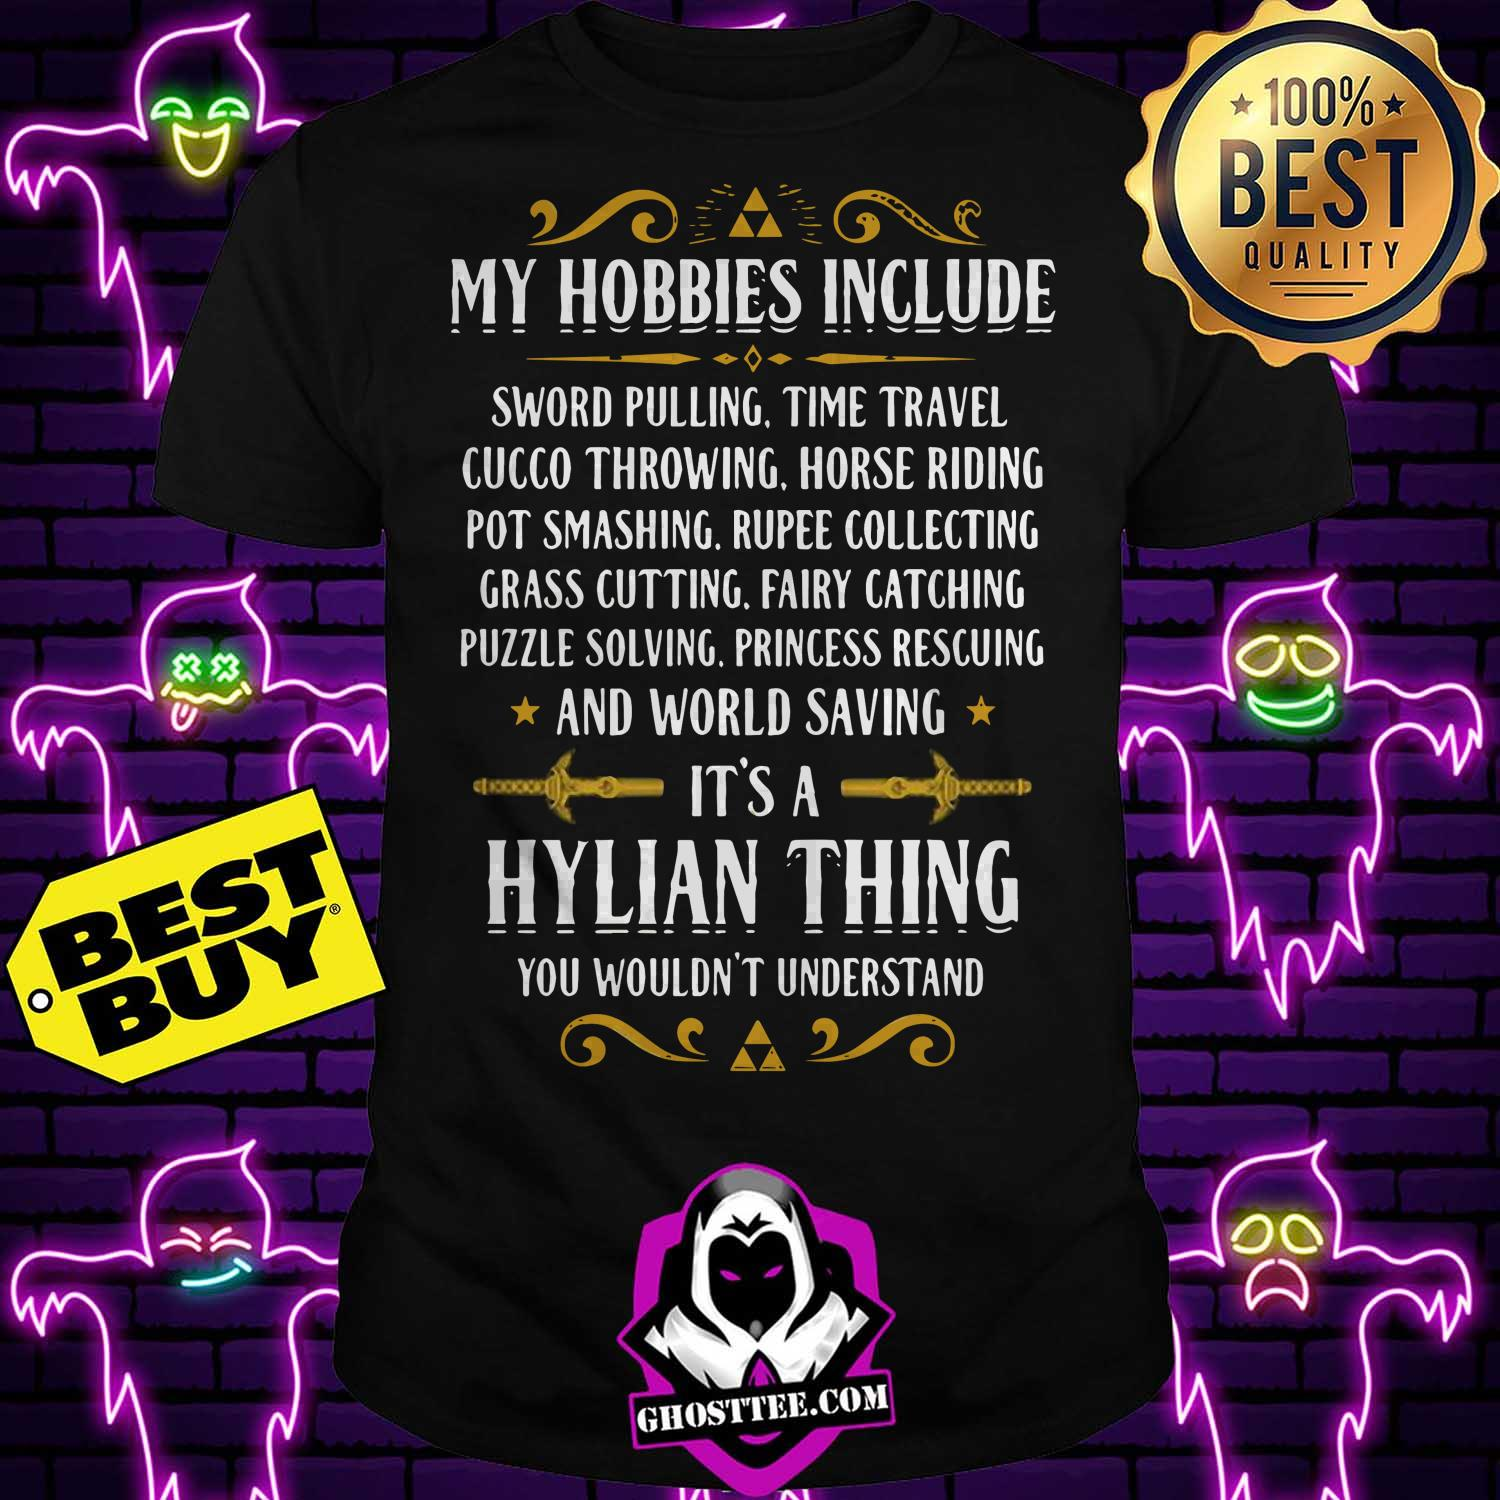 my hobbies include hylian thing legendary you wouldnt understand hoodie - My hobbies Include Hylian Thing Legendary you Wouldn't understand shirt